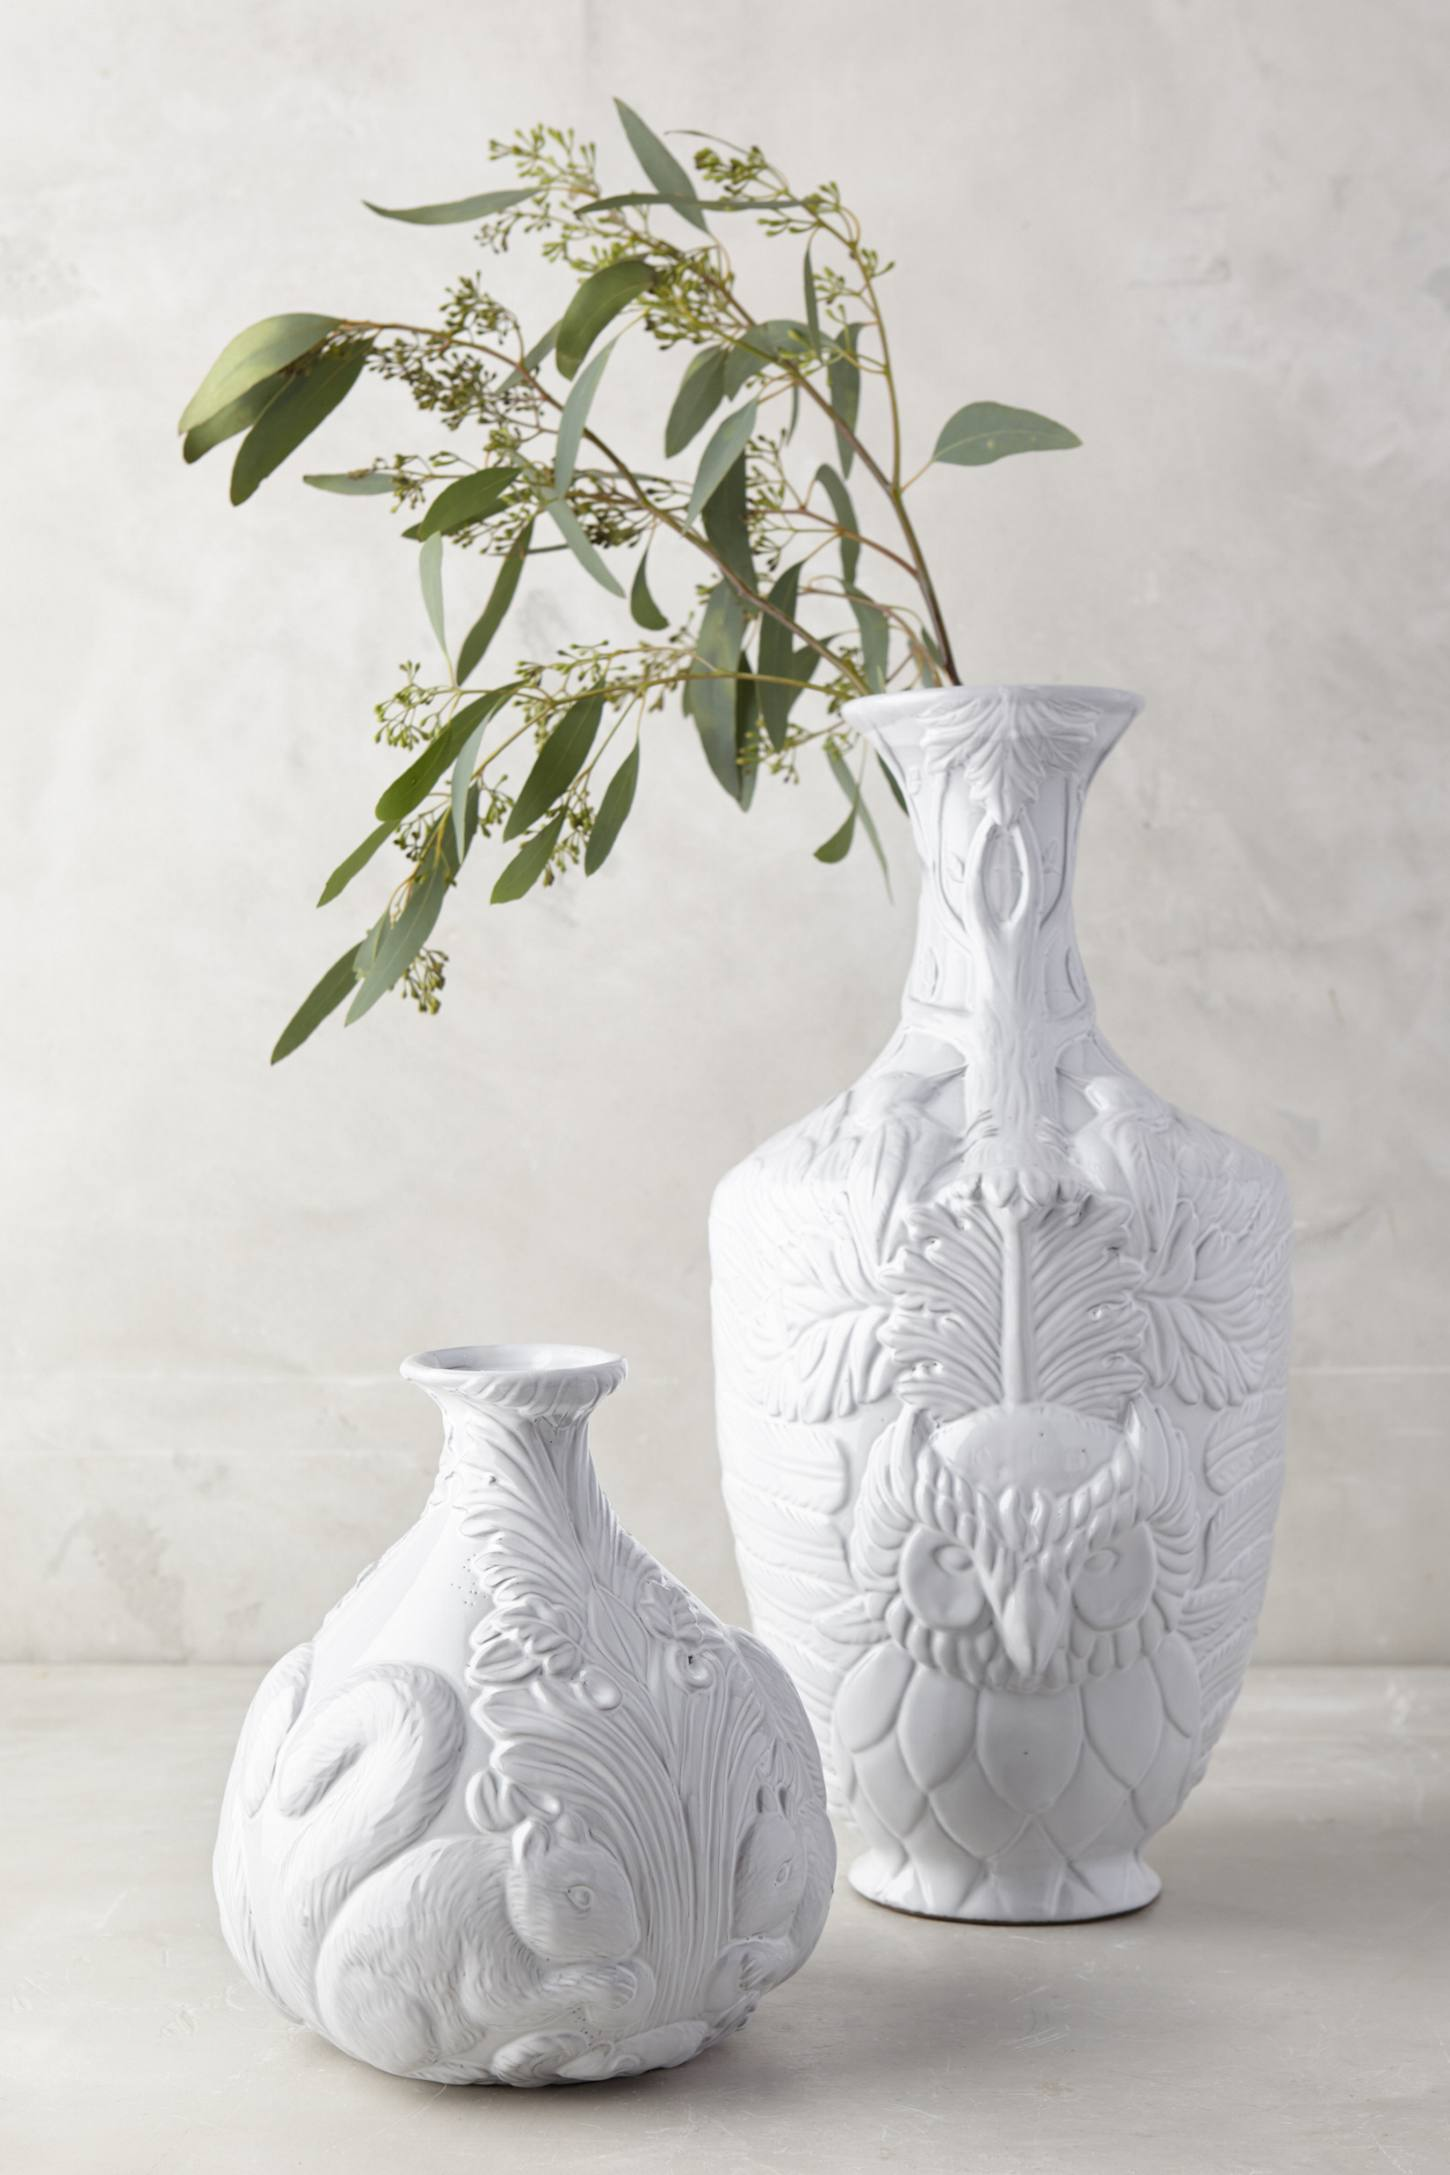 Sylvan Thicket Vase